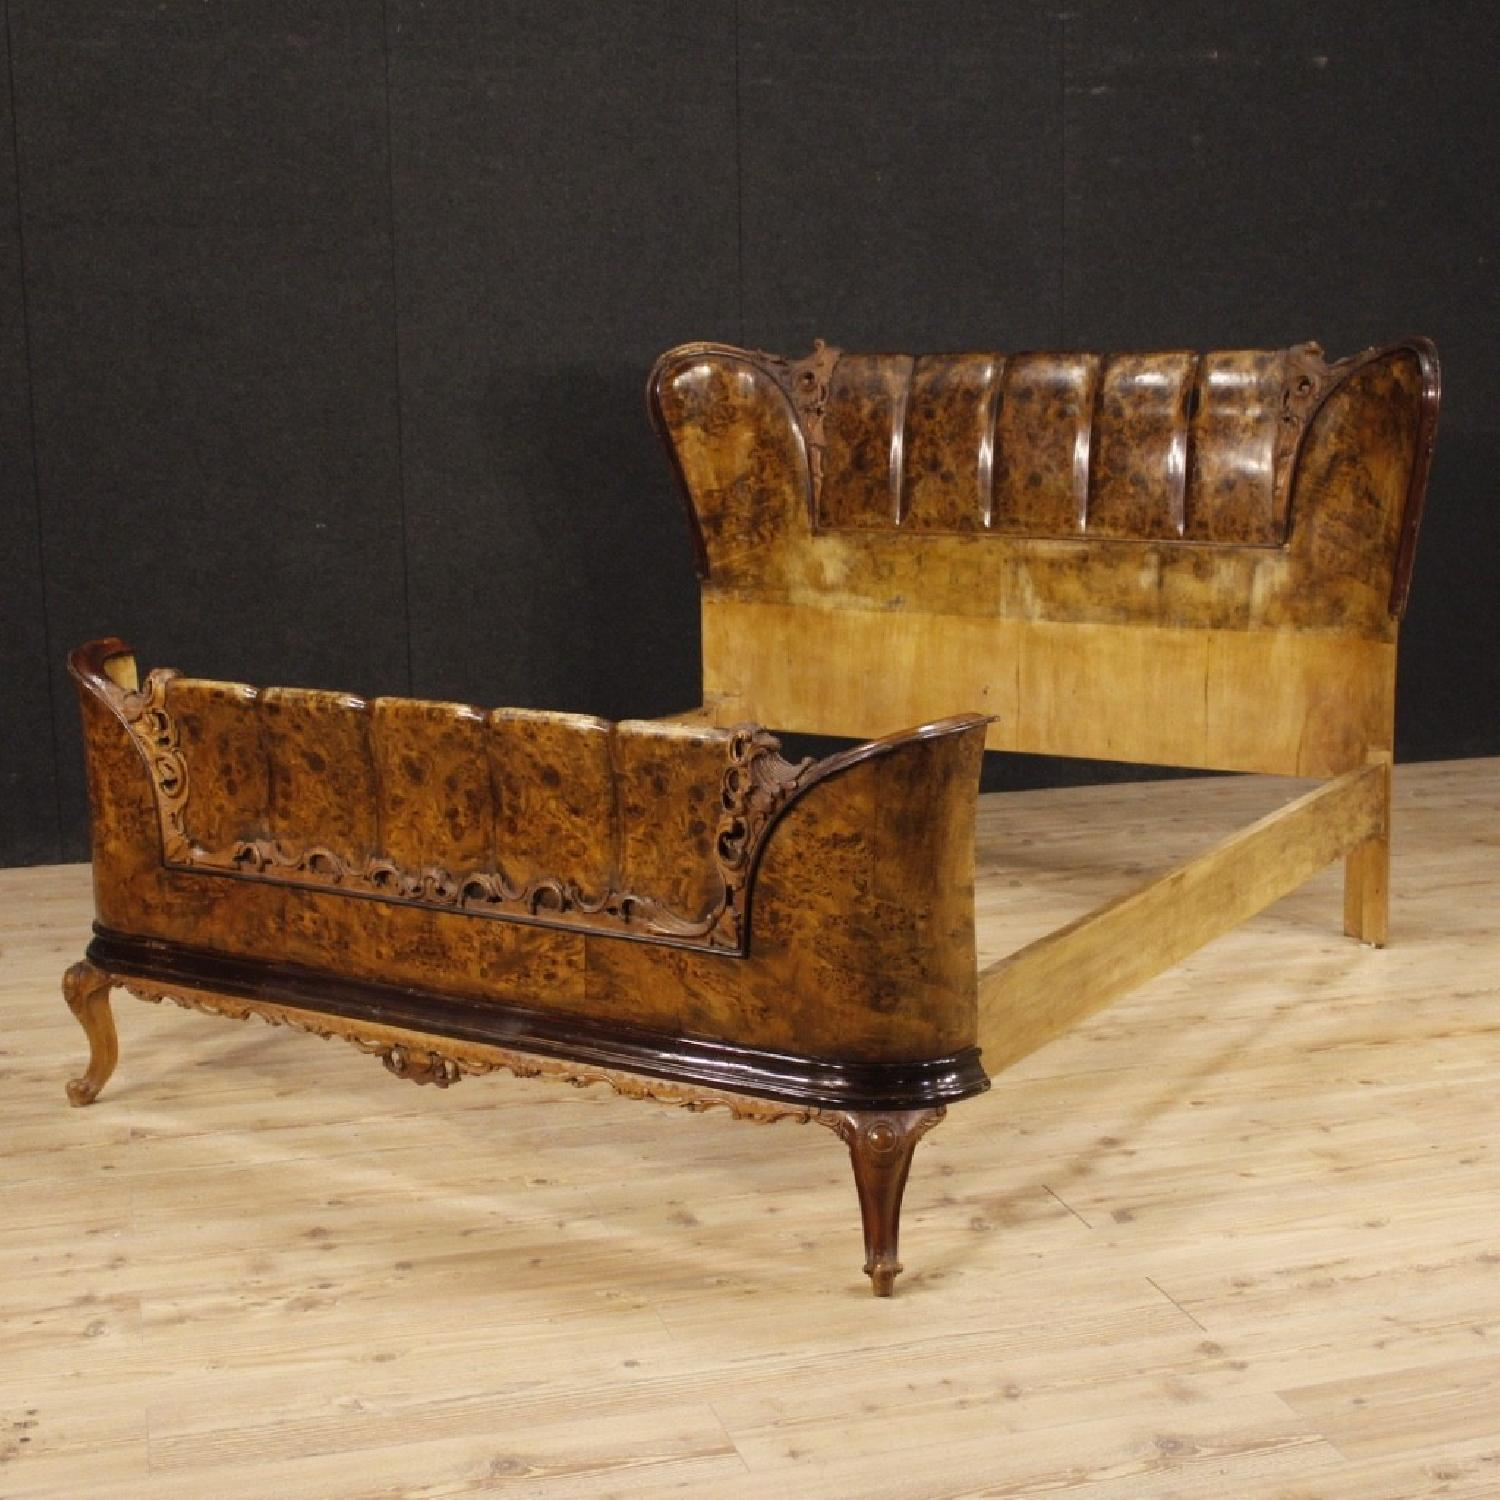 20th Century Cherry, Beech, Burl Walnut Italian Double Bed-11